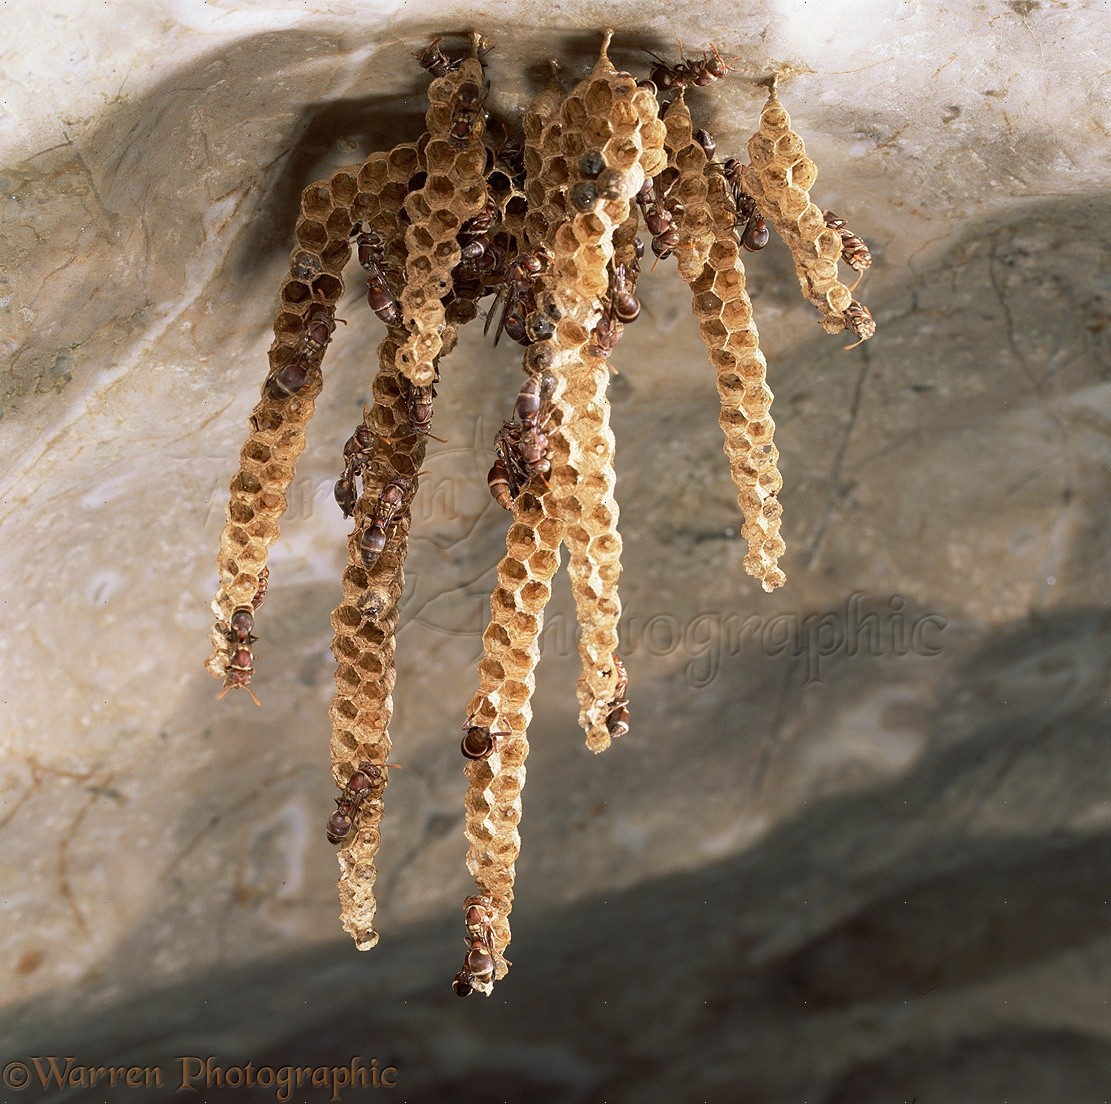 Paper Wasps nest photoWP16057